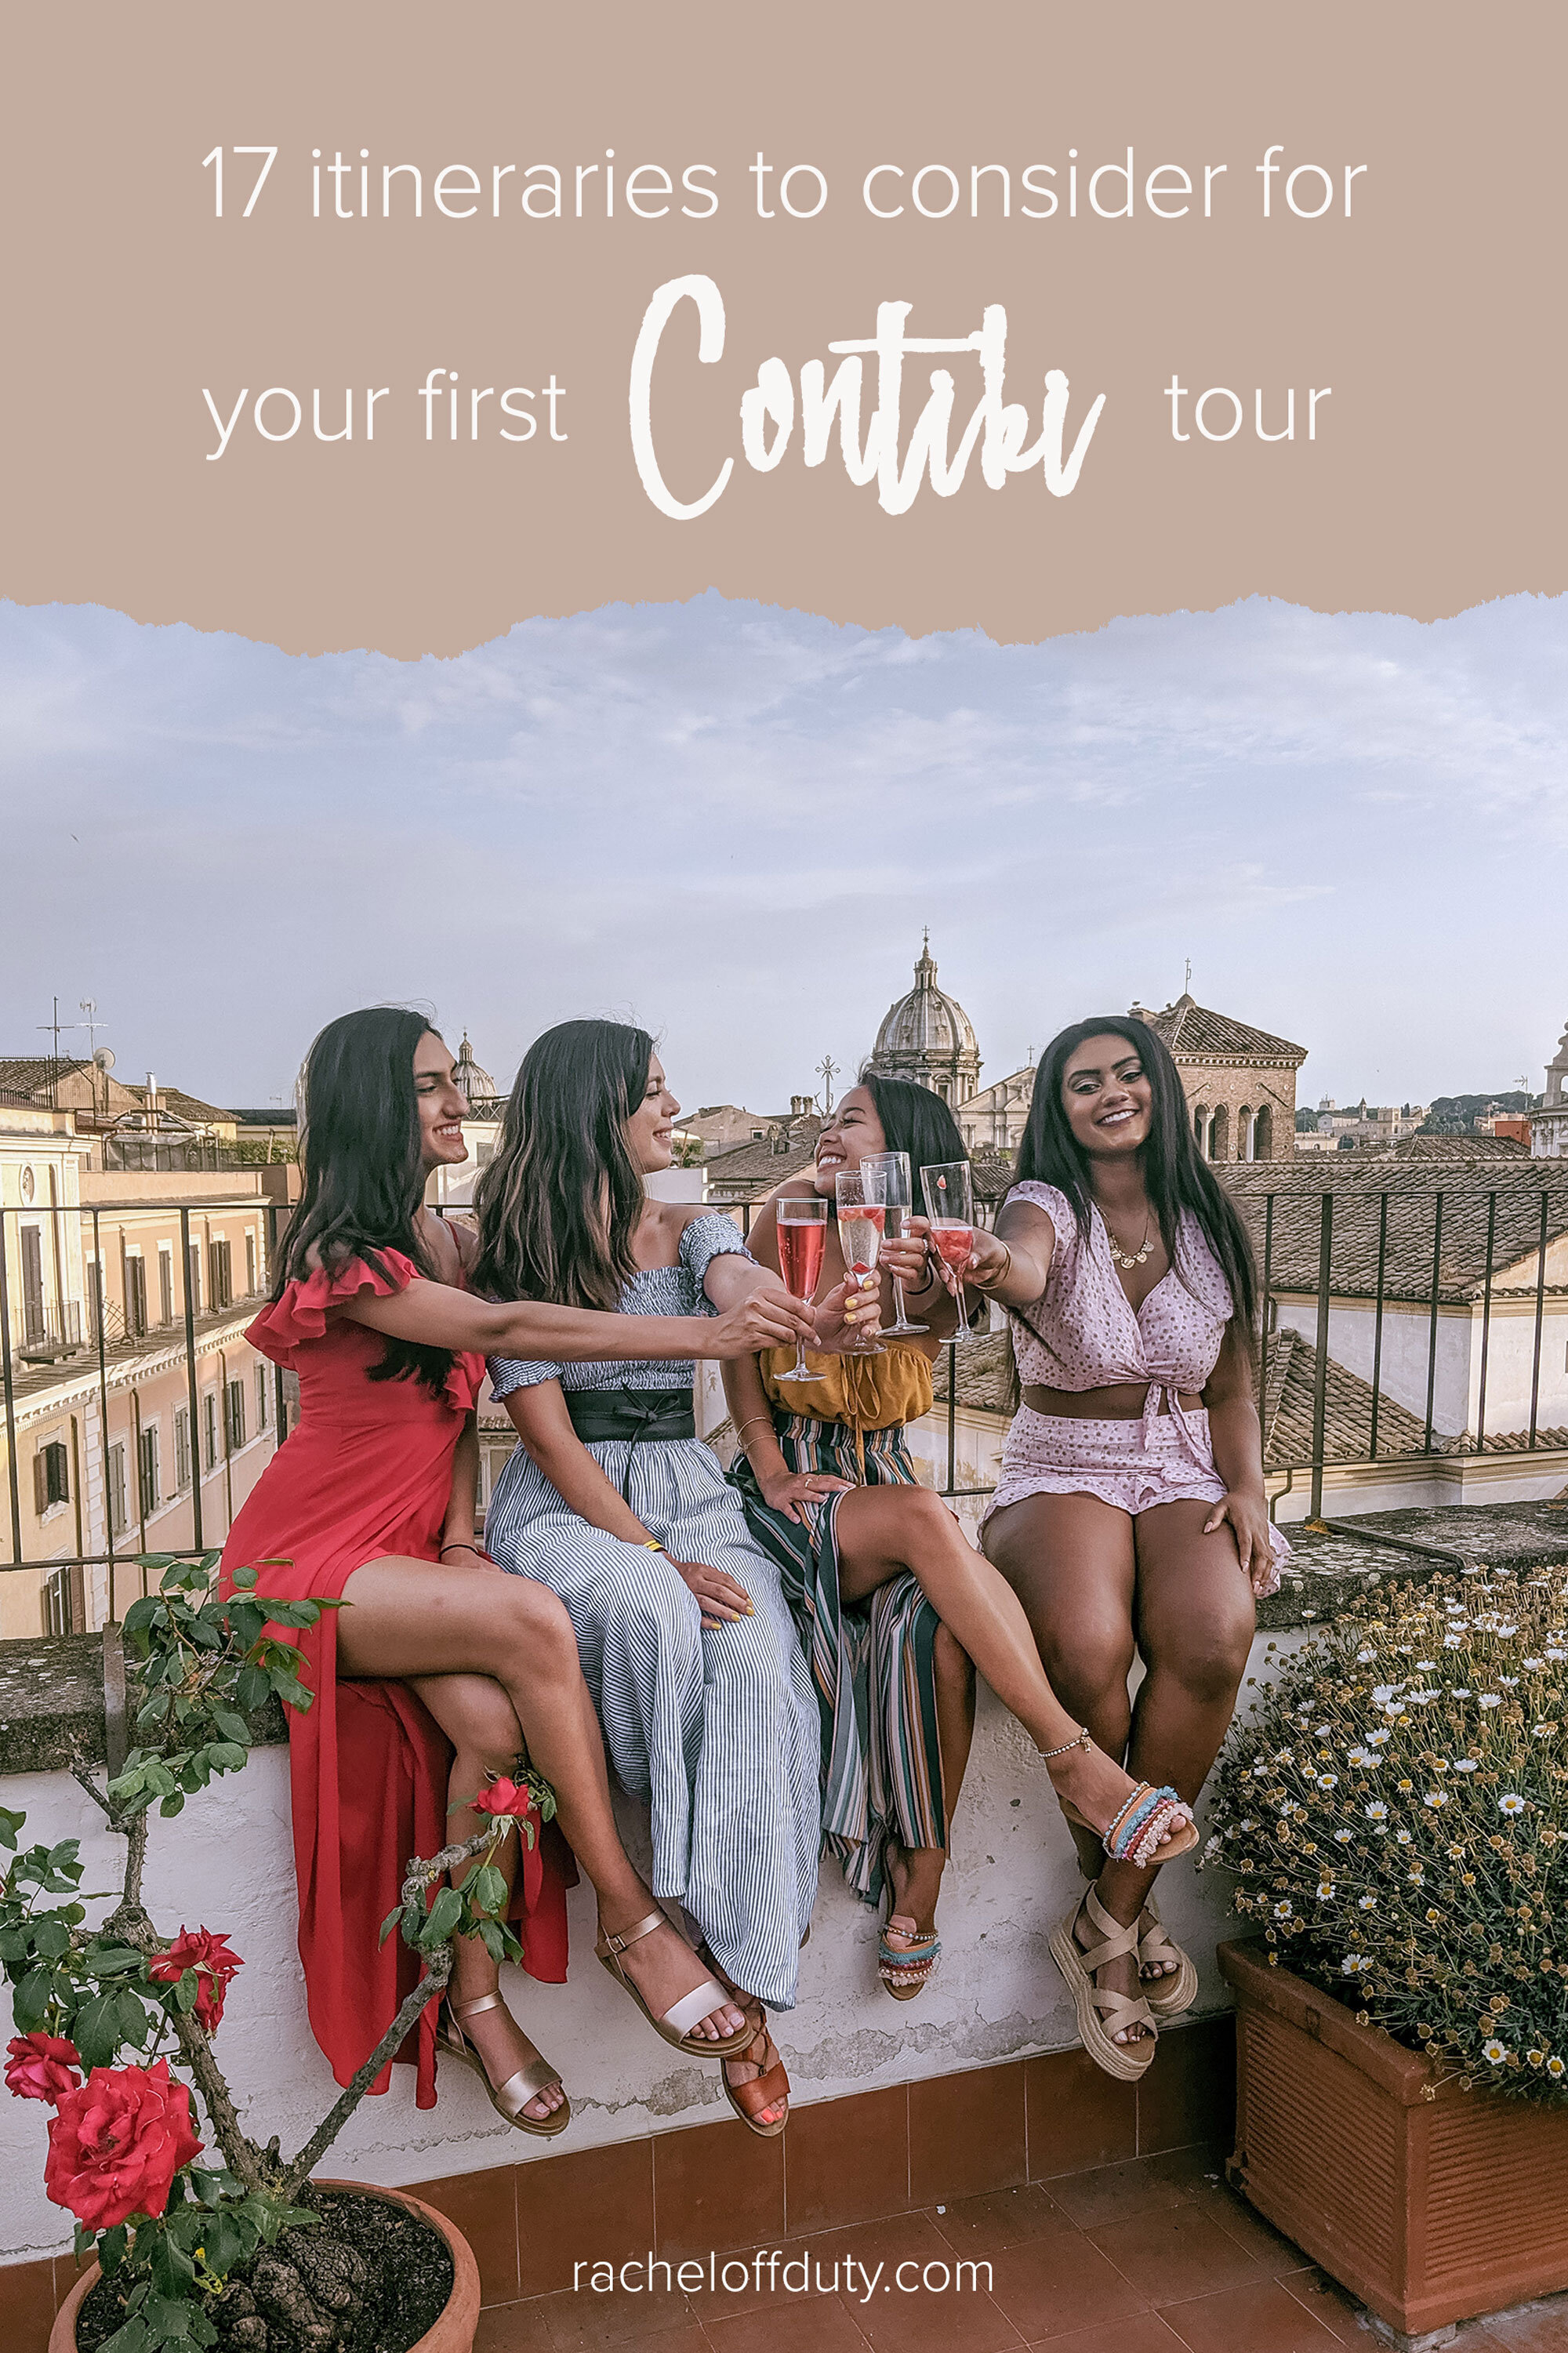 Rachel Off Duty: Everything You Need to Know for Your First Contiki Tour (Plus Trip Recommendations)